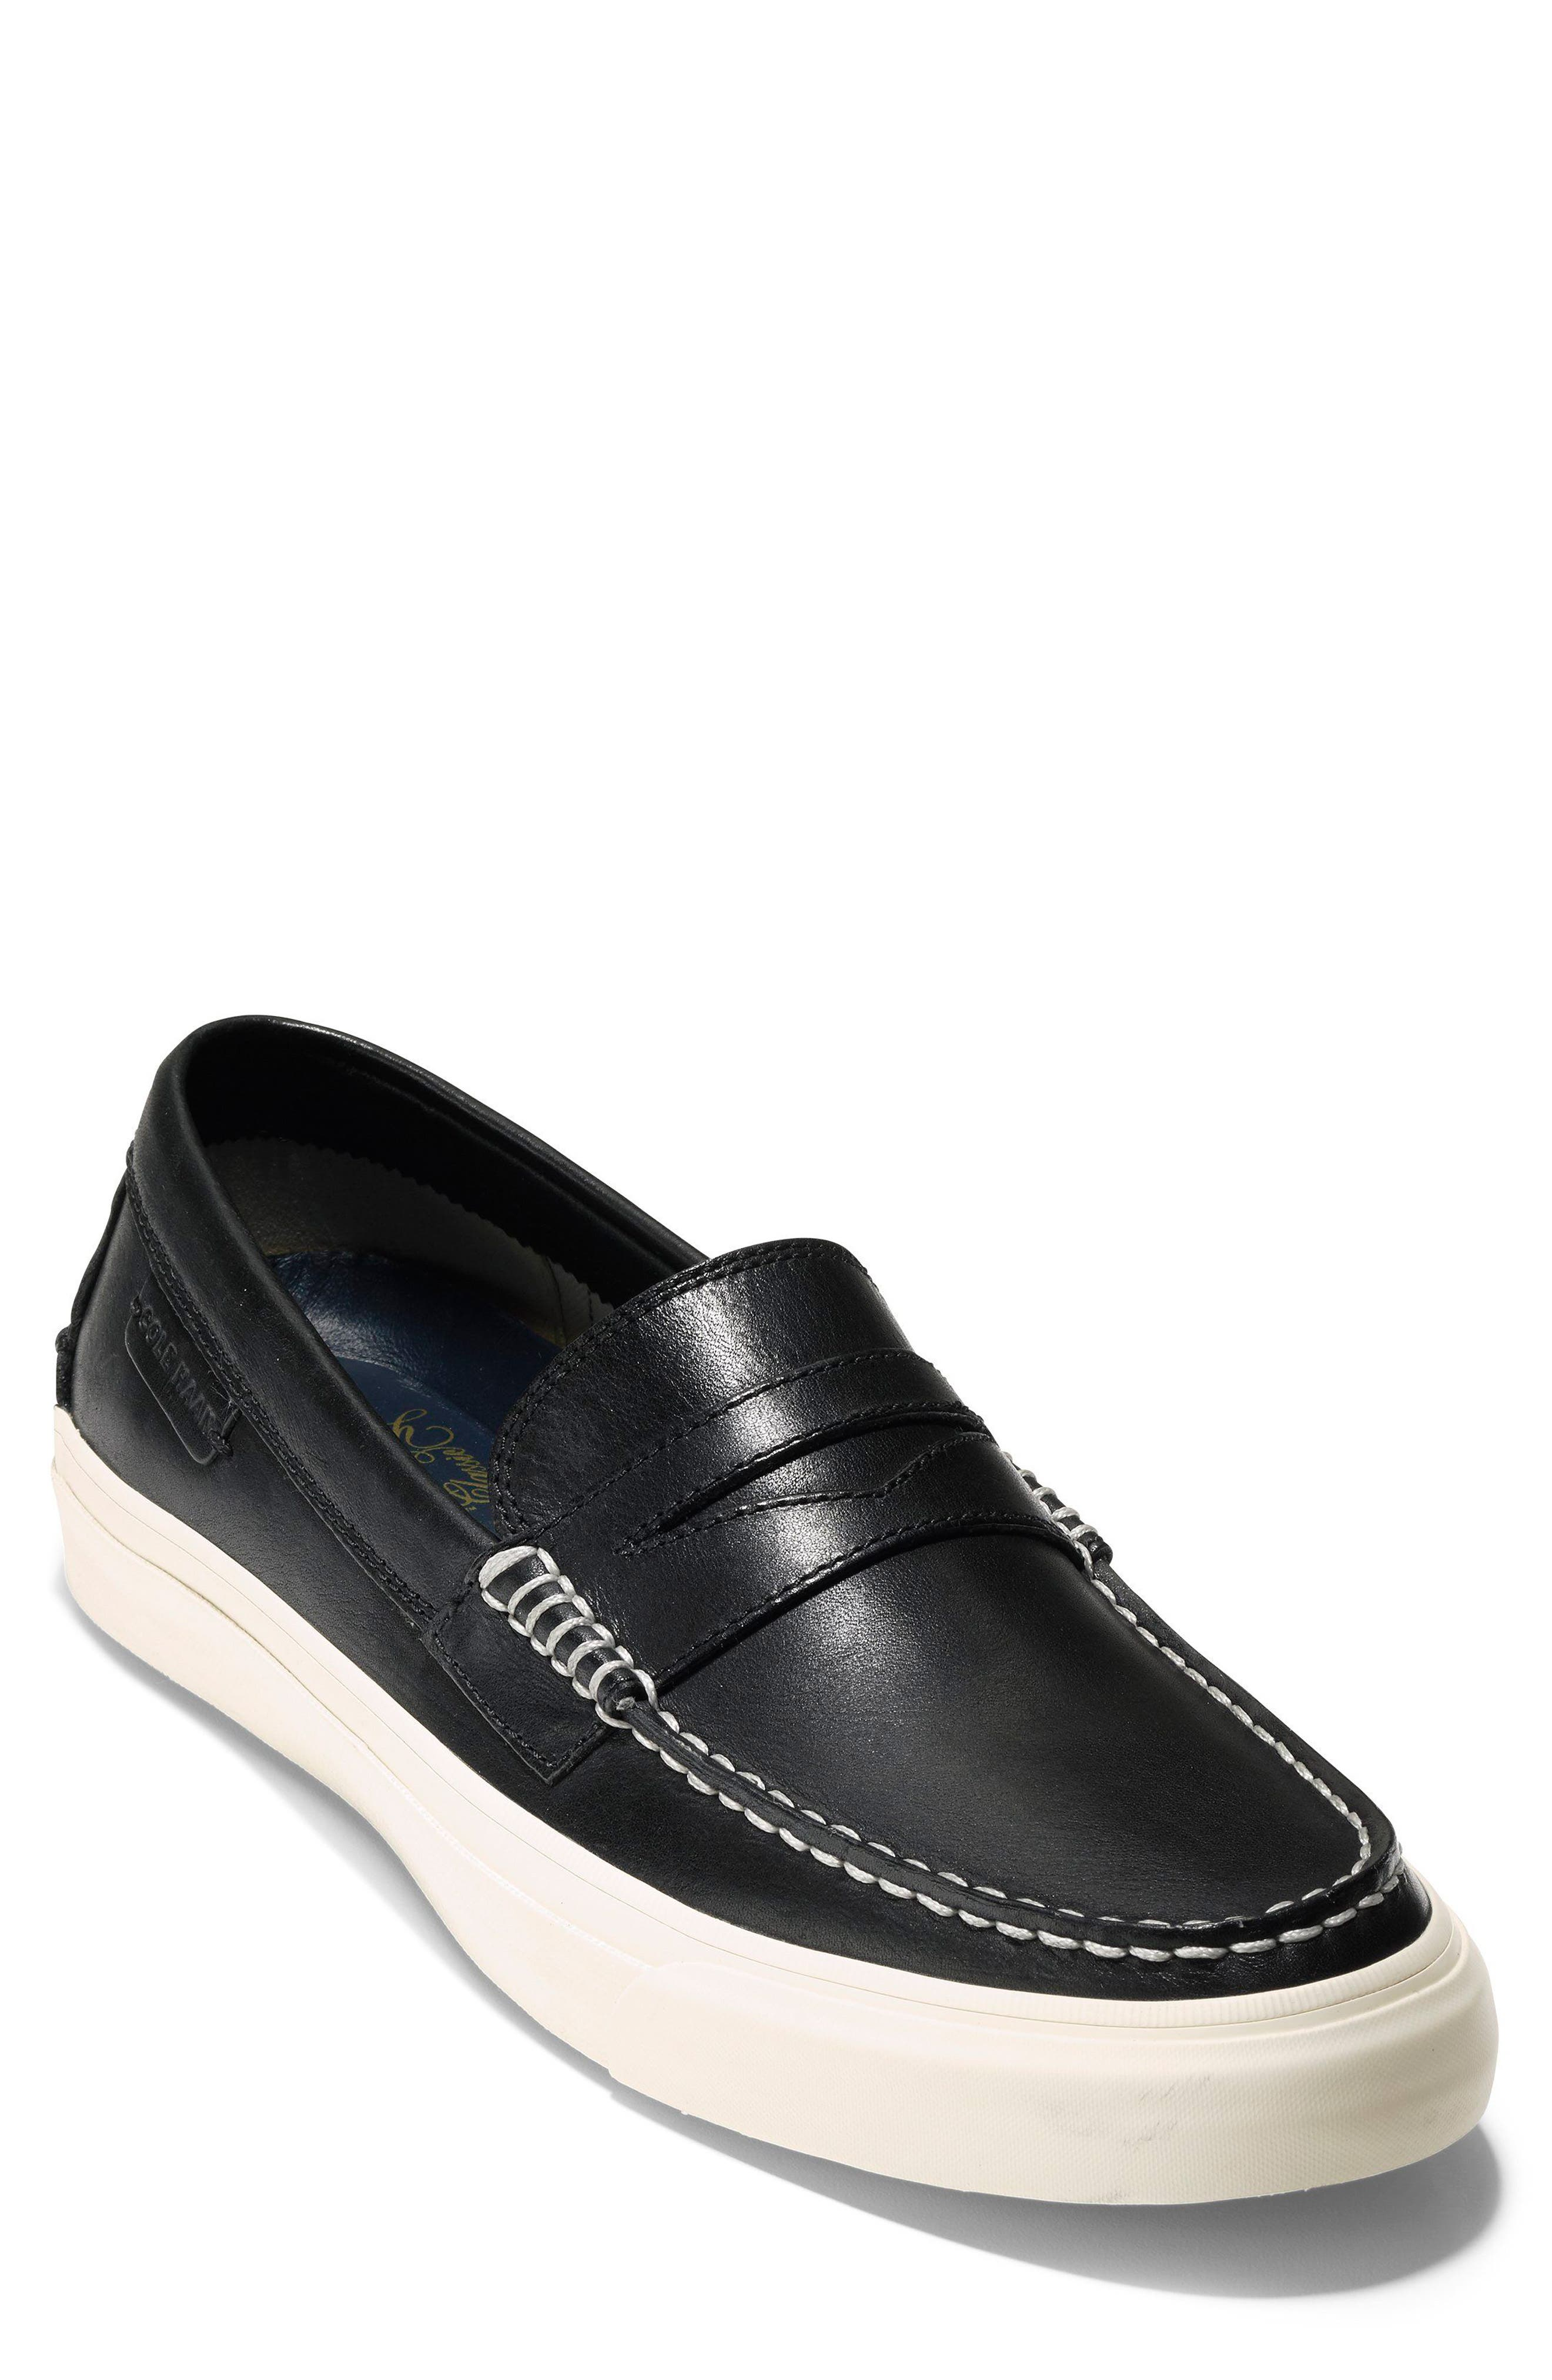 Pinch Weekend LX Penny Loafer,                             Main thumbnail 1, color,                             001